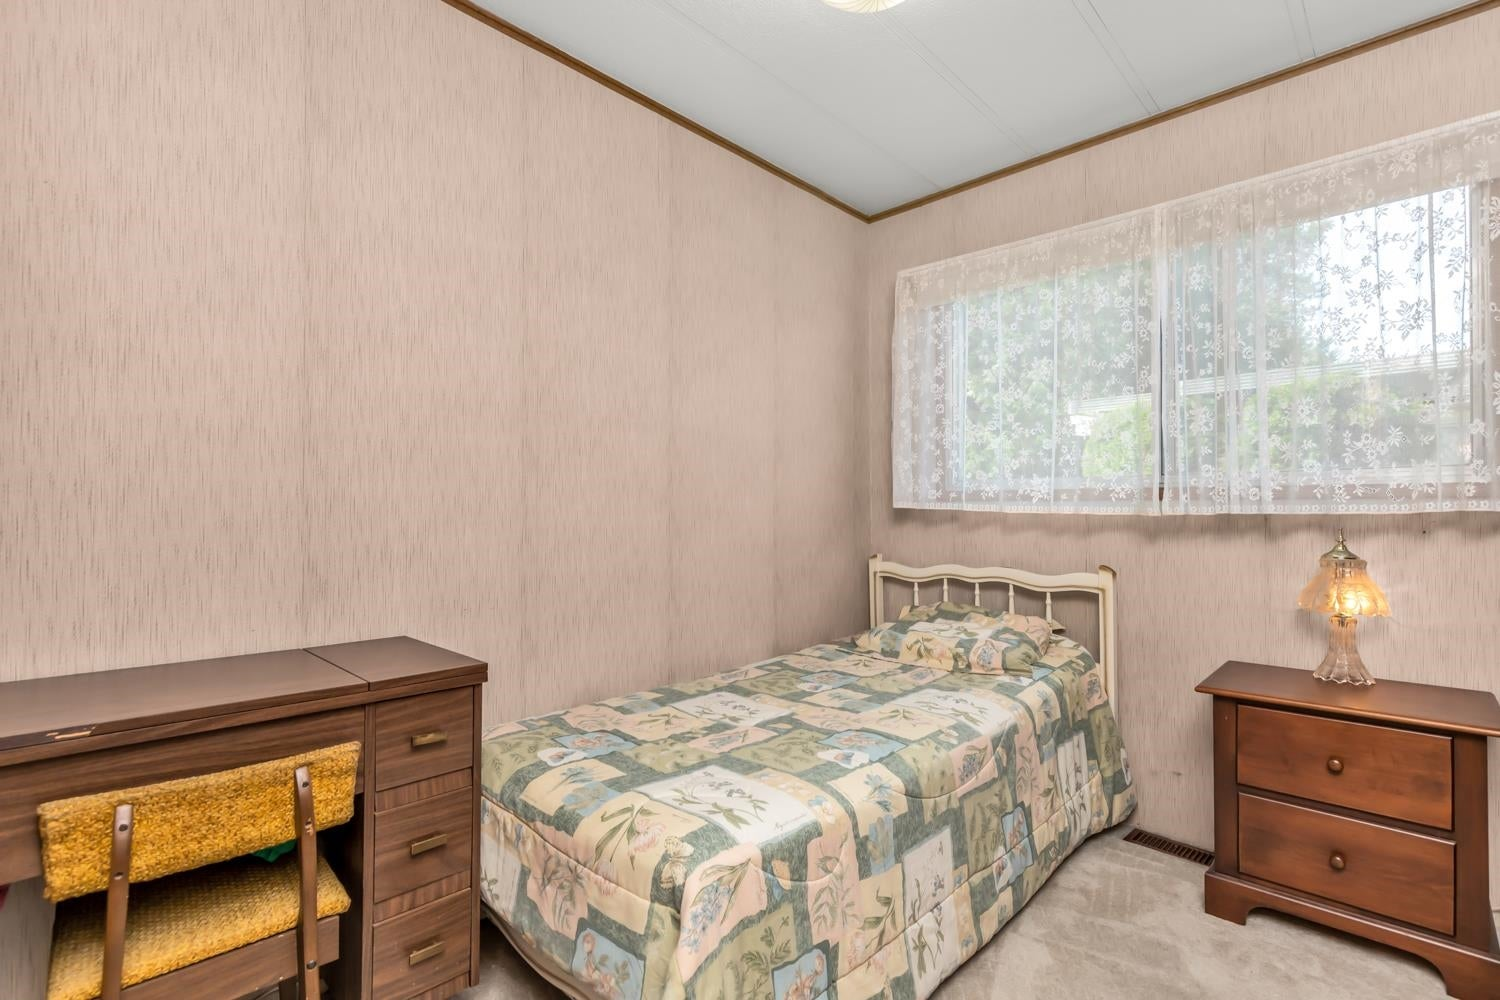 44 13507 81 AVENUE - Queen Mary Park Surrey Manufactured with Land for sale, 2 Bedrooms (R2624906) - #21